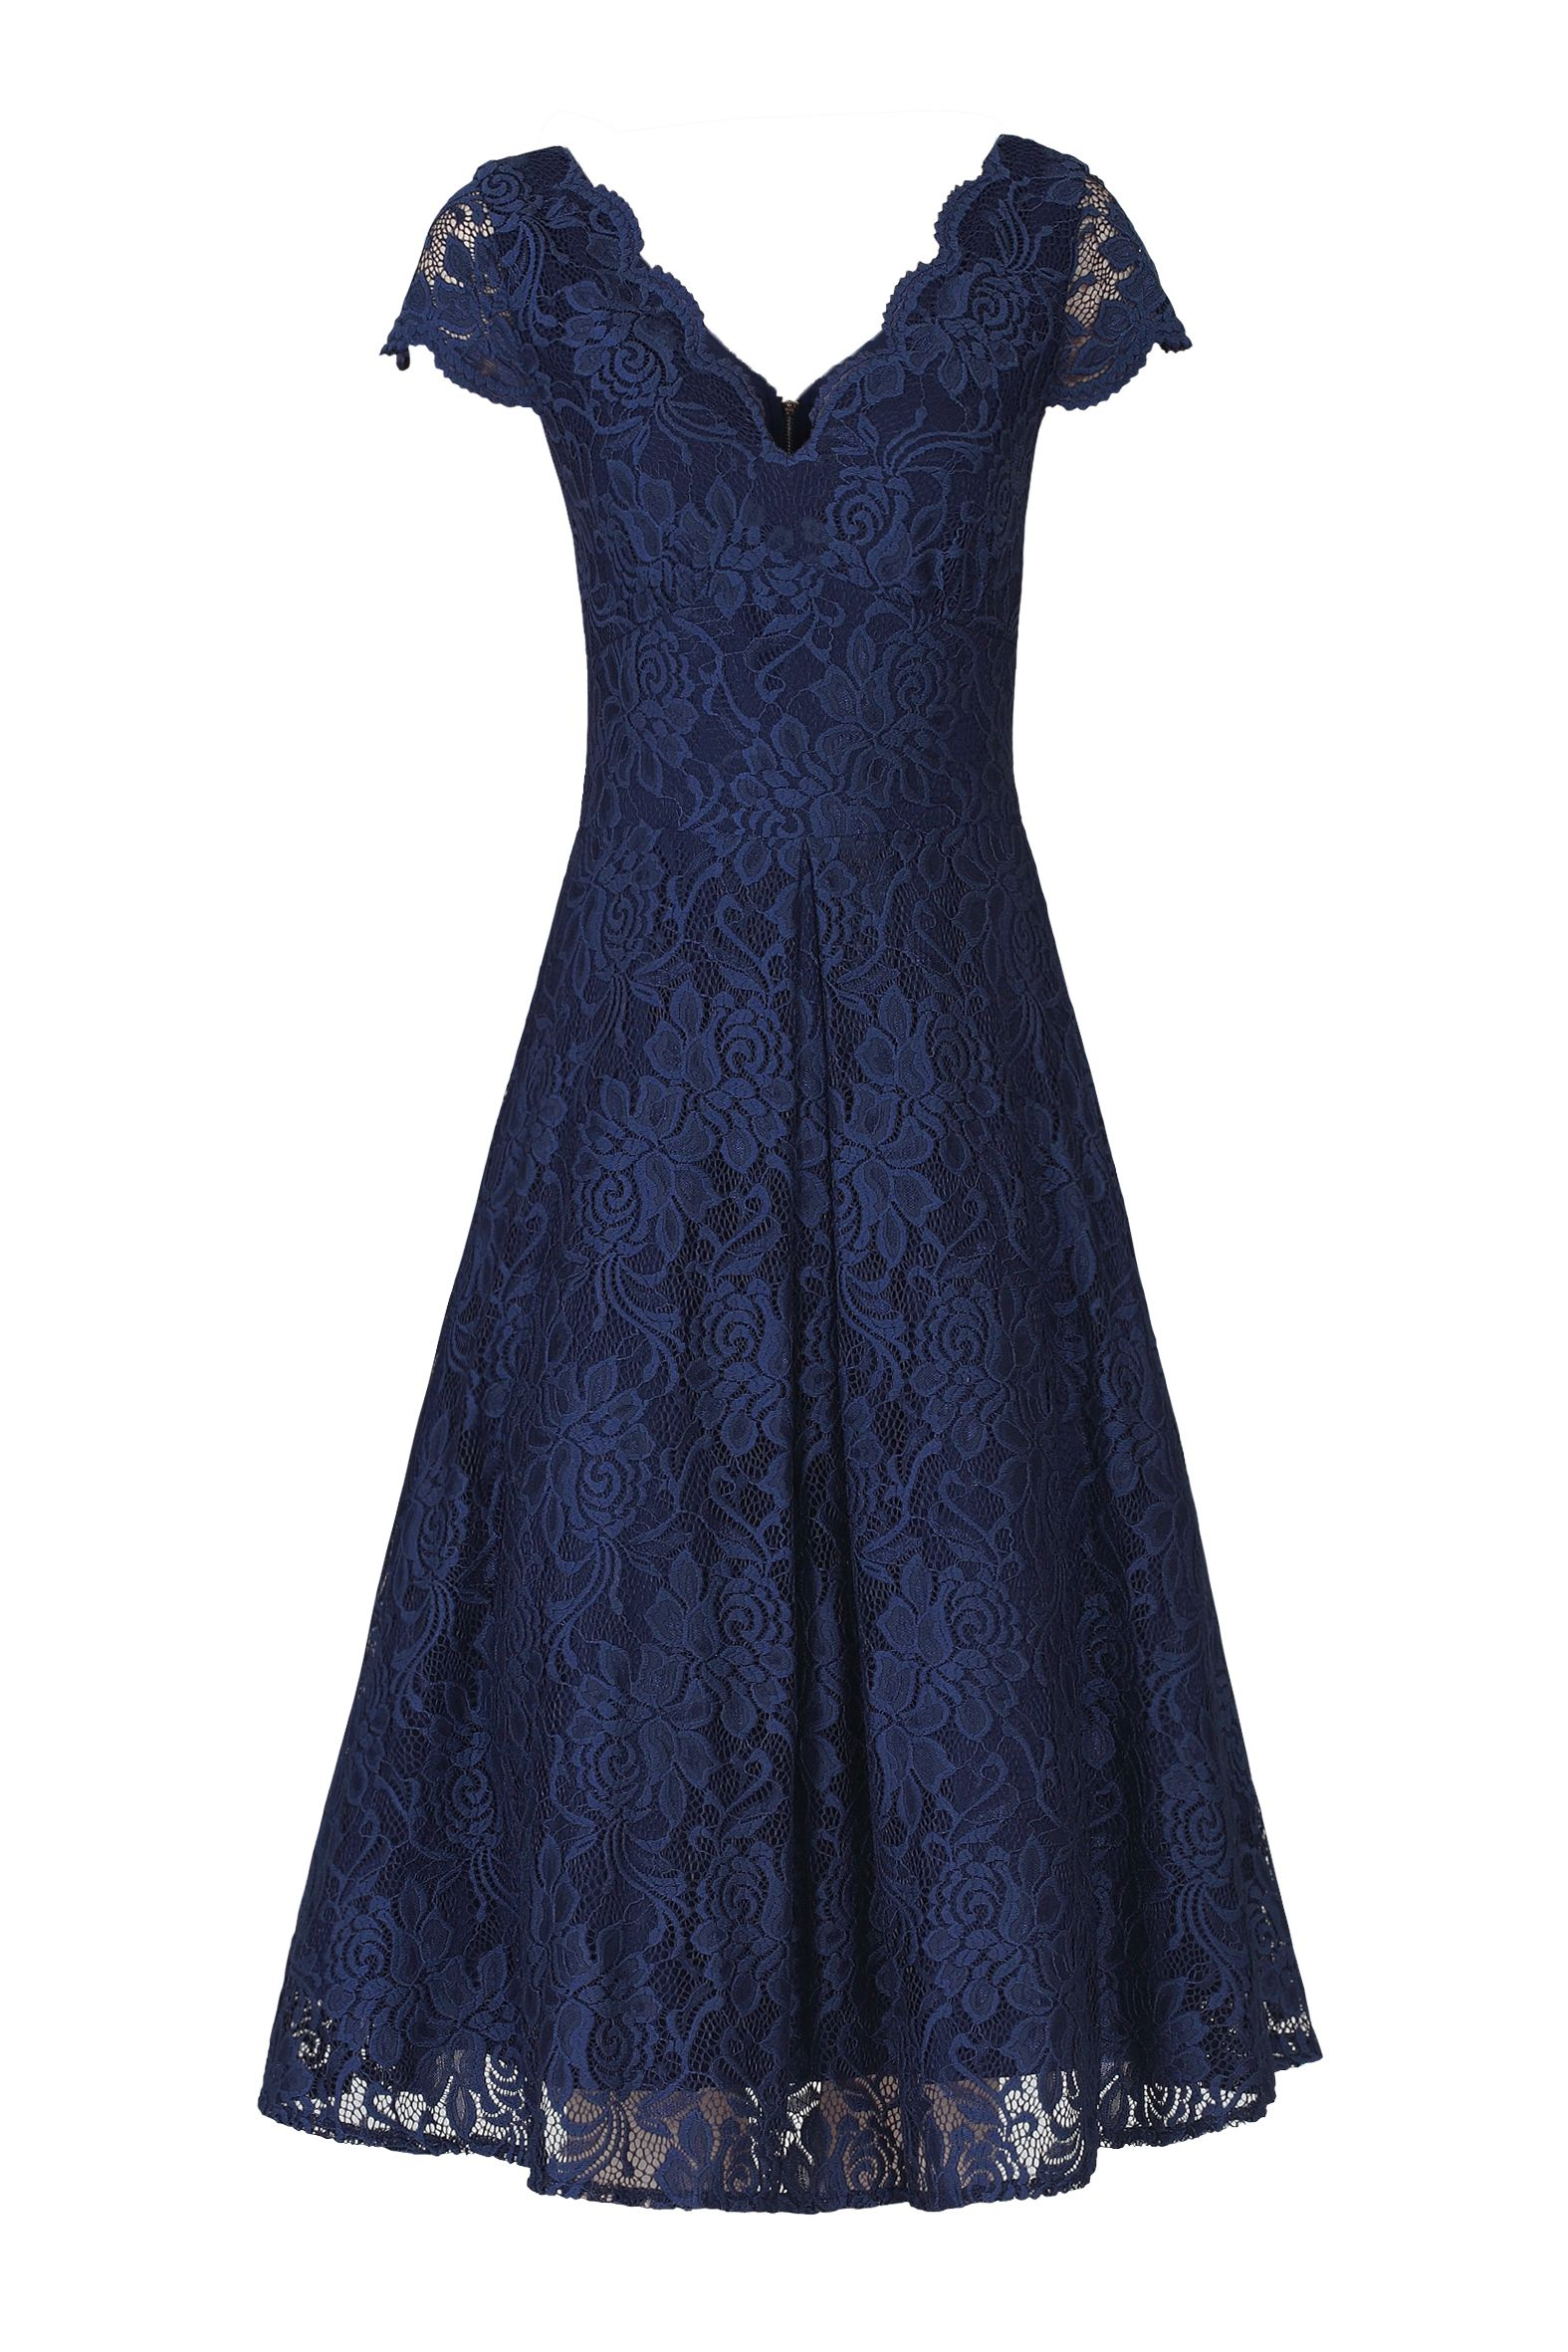 Jolie Moi Cap Sleeve Lace Prom Dress, Blue